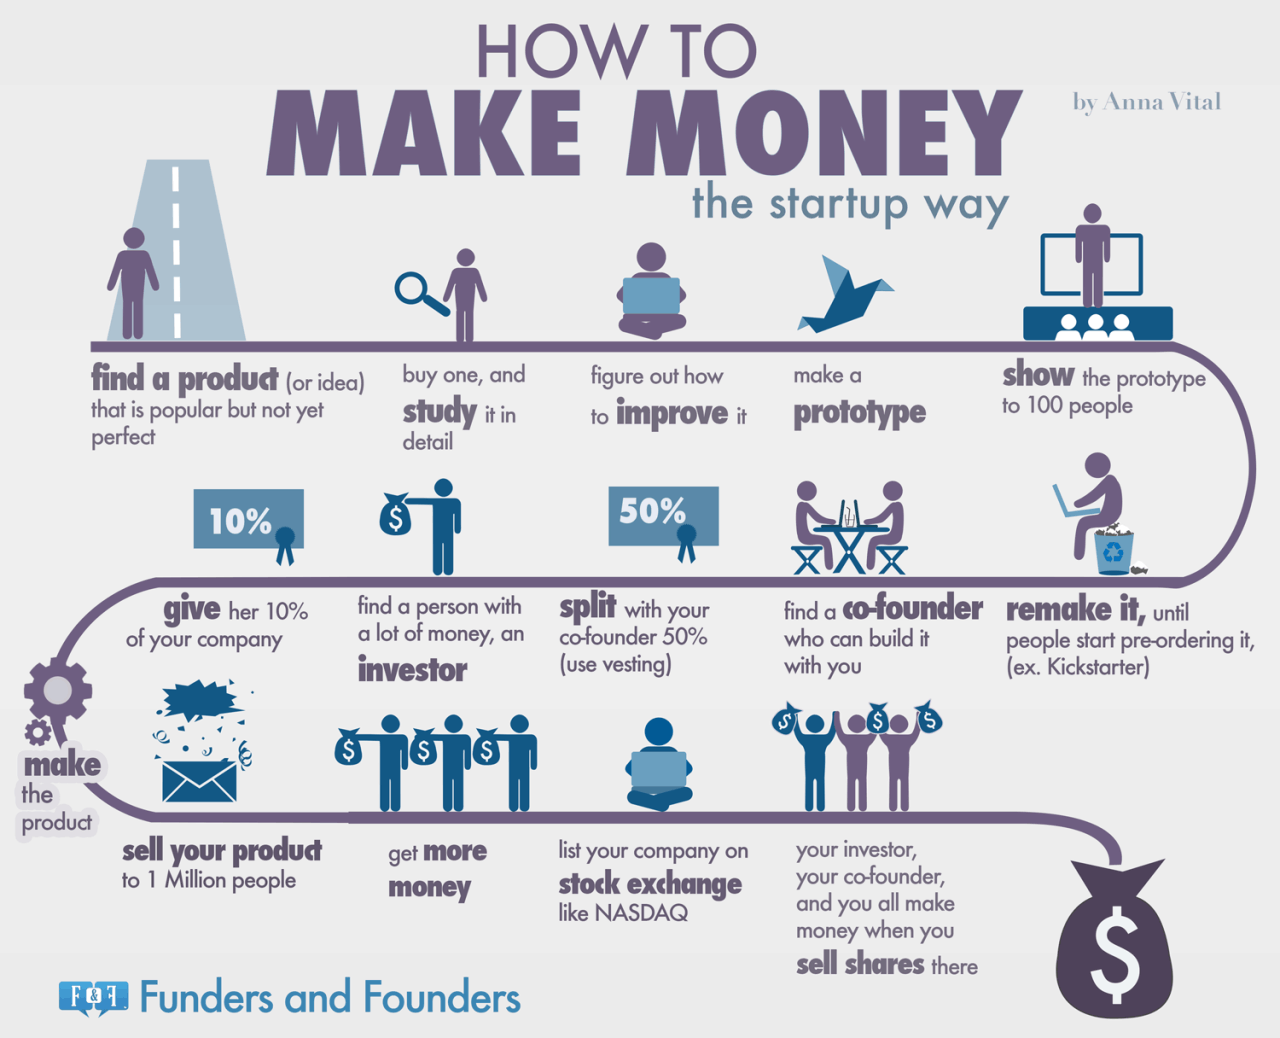 how-to-make-money-the-startup-way-infographic